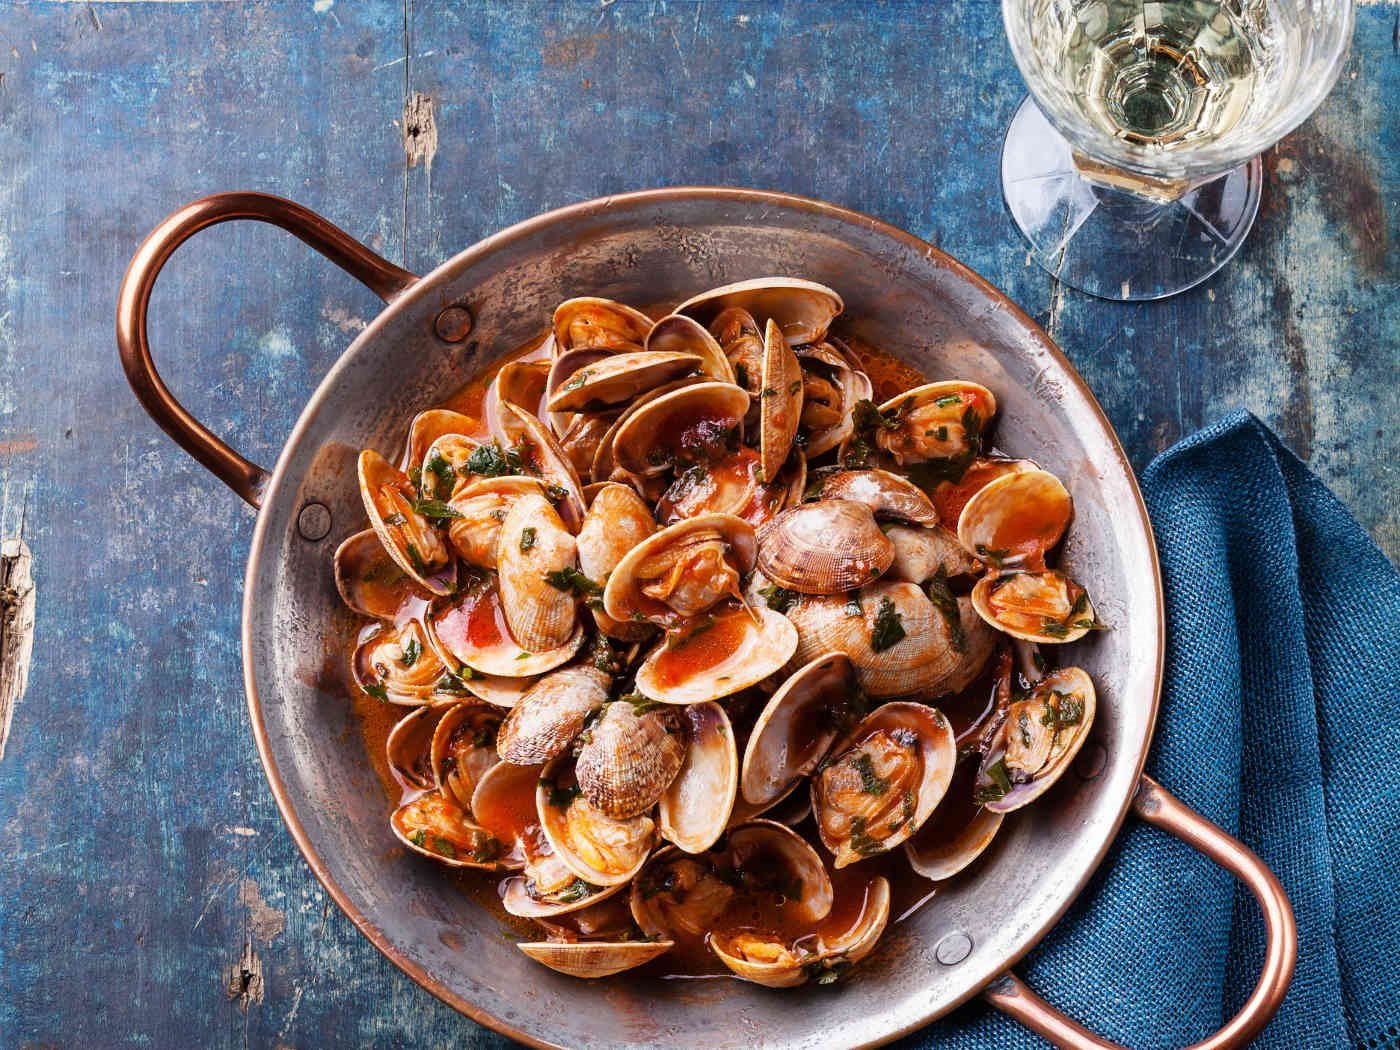 Vongole Tomato Sauce Vongole Shells With Tomato